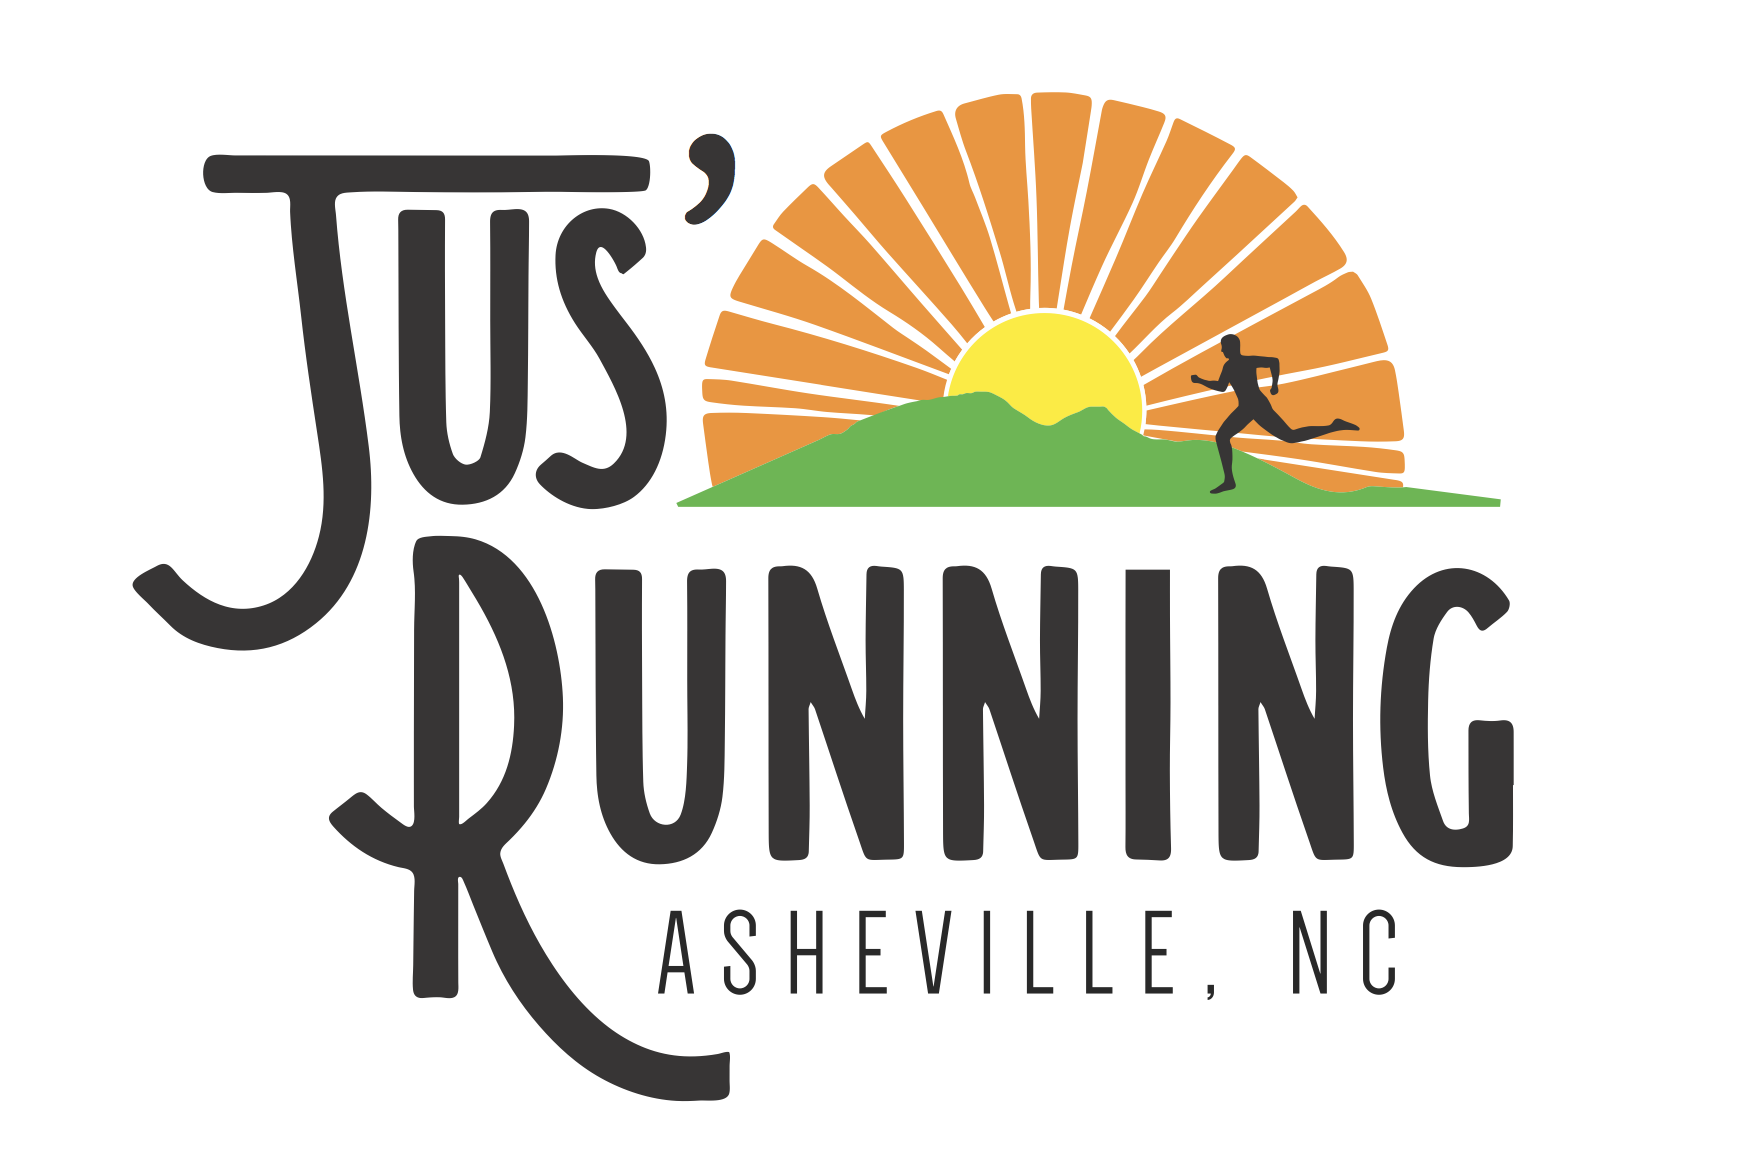 Jus-Running-new-logo-with-apostrophe-copy